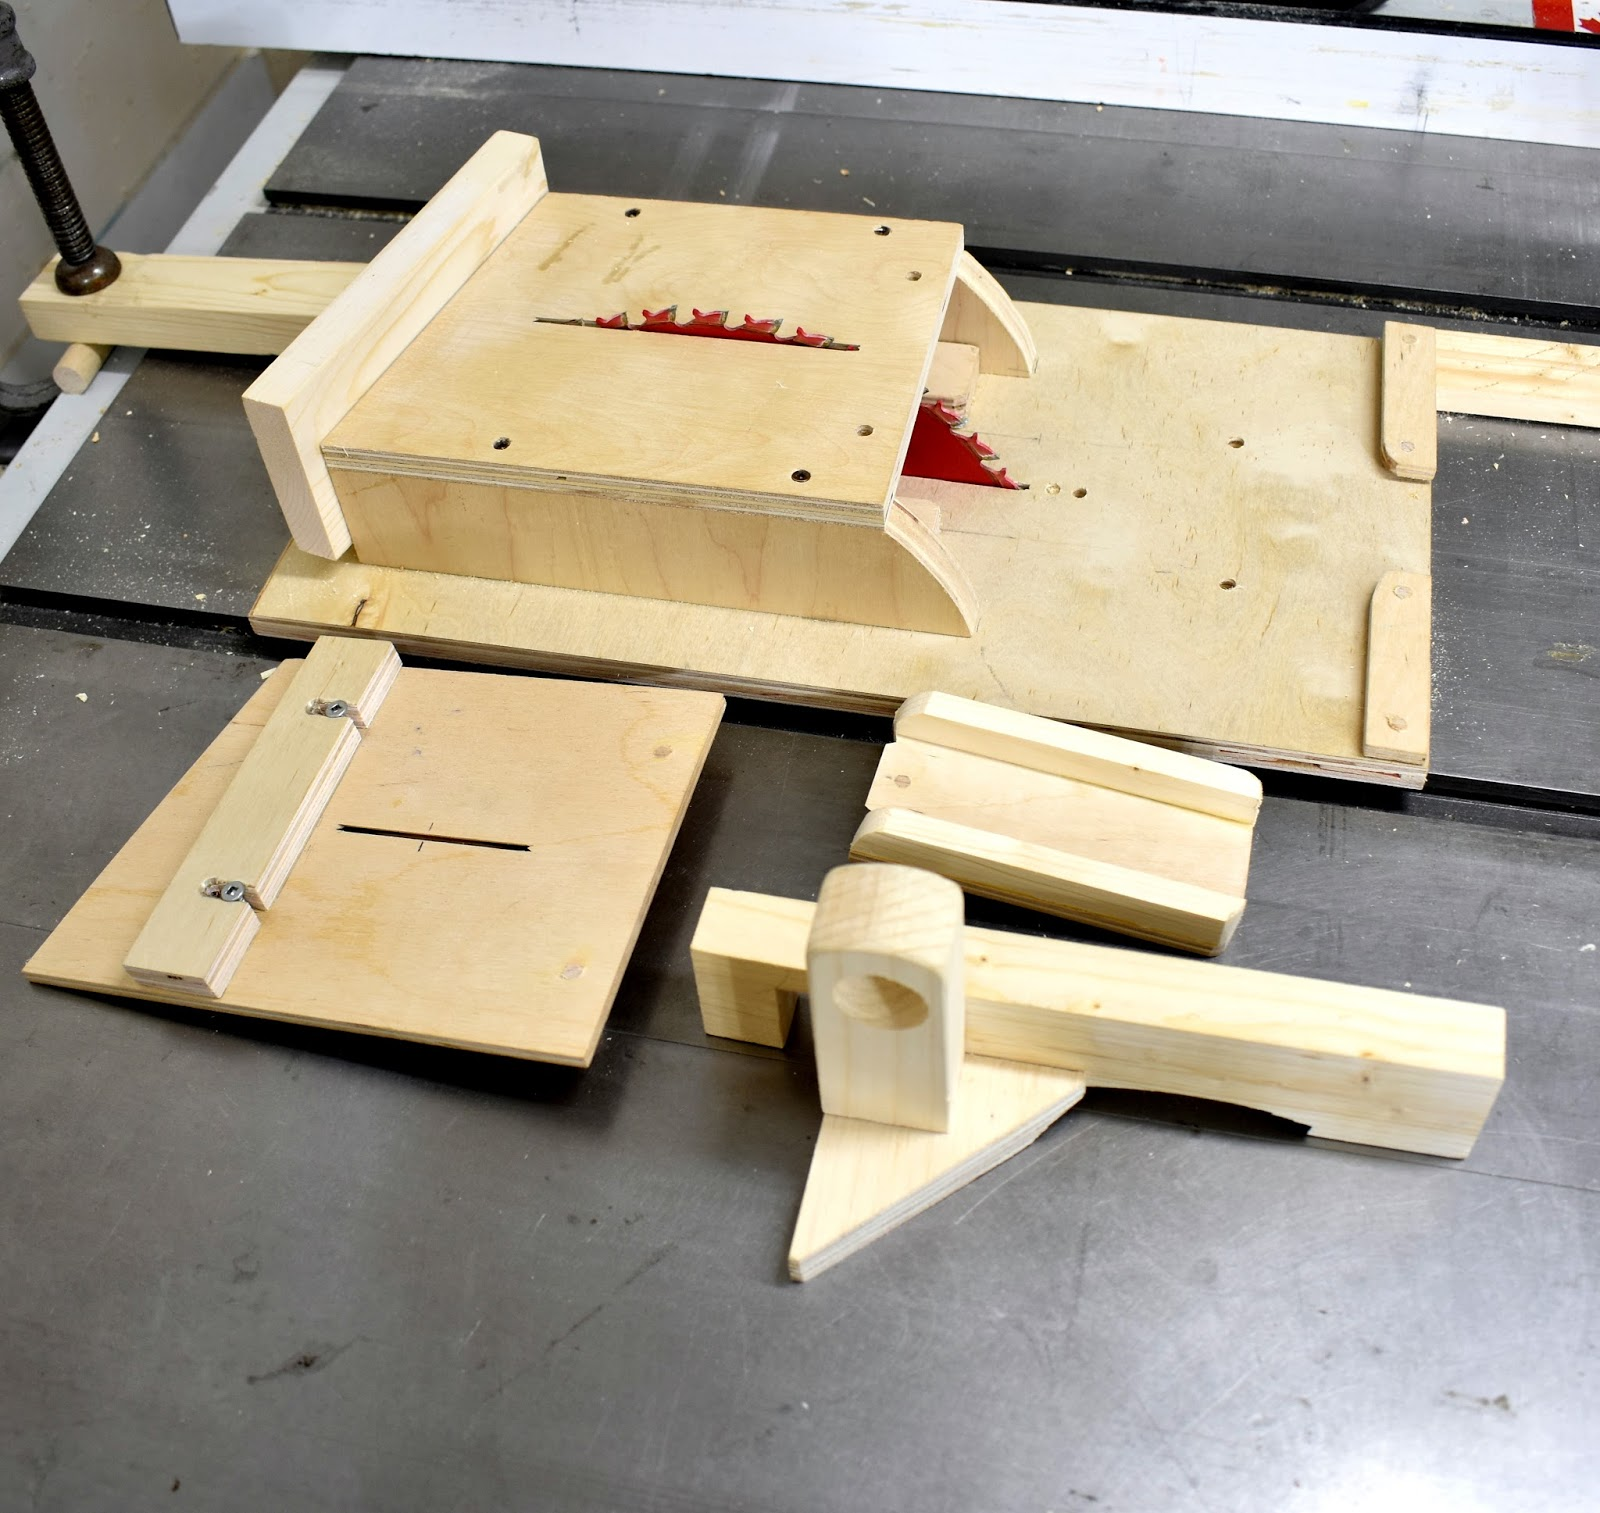 Jax design table saw jig for wooden spoons